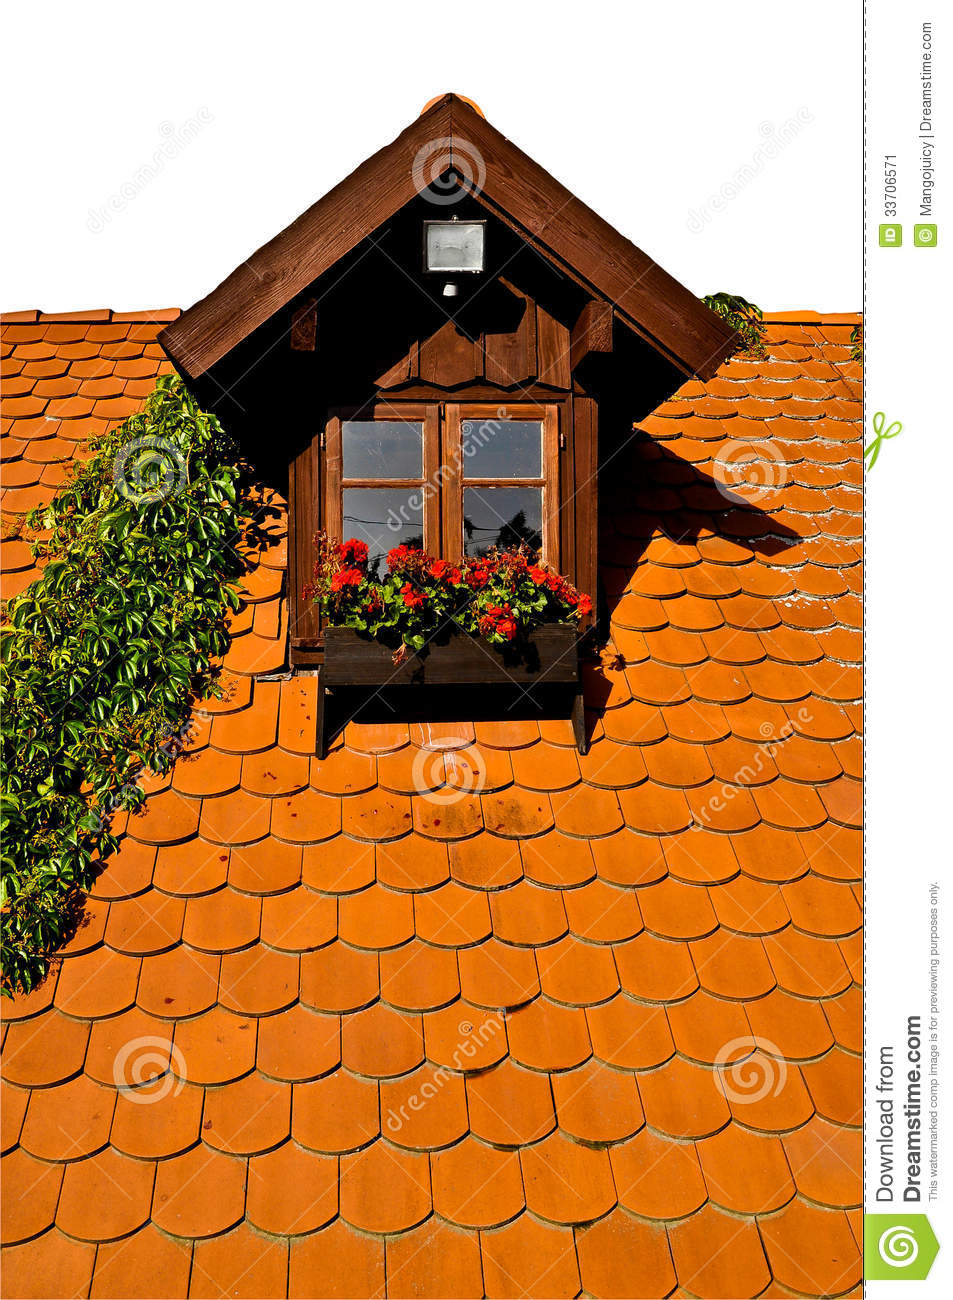 Rural Dormer Window On Roof Flowers And Creeper Plant